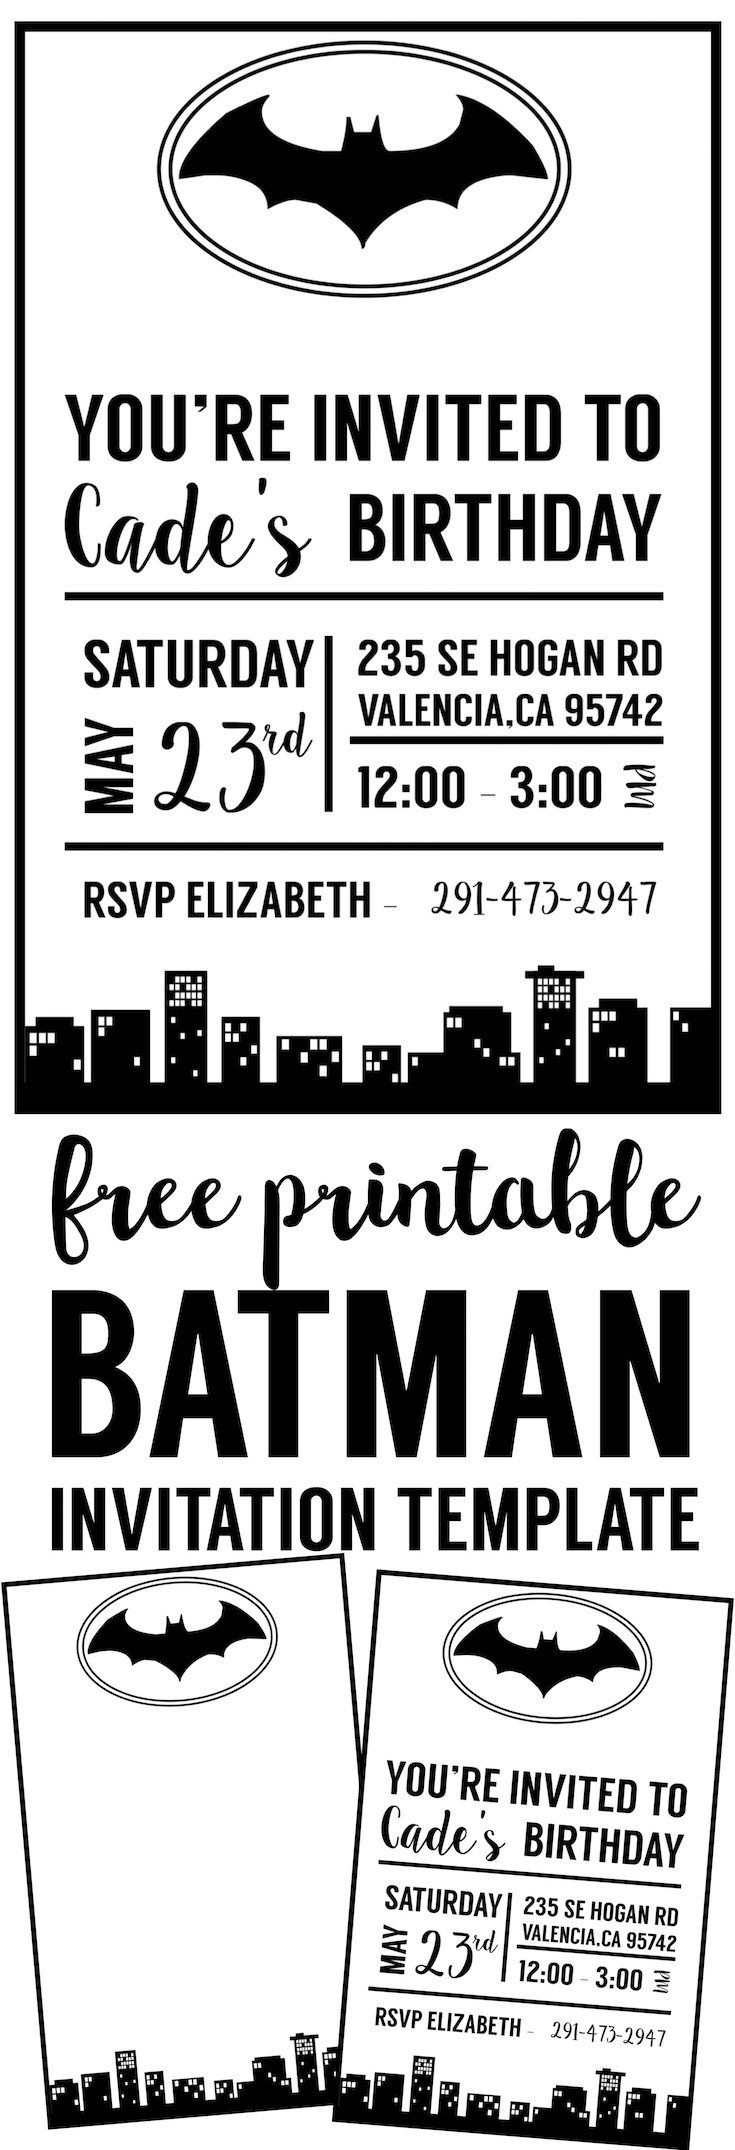 picture relating to Printable Batman Invitations referred to as Absolutely free Batman Invitation Template - Paper Path Structure